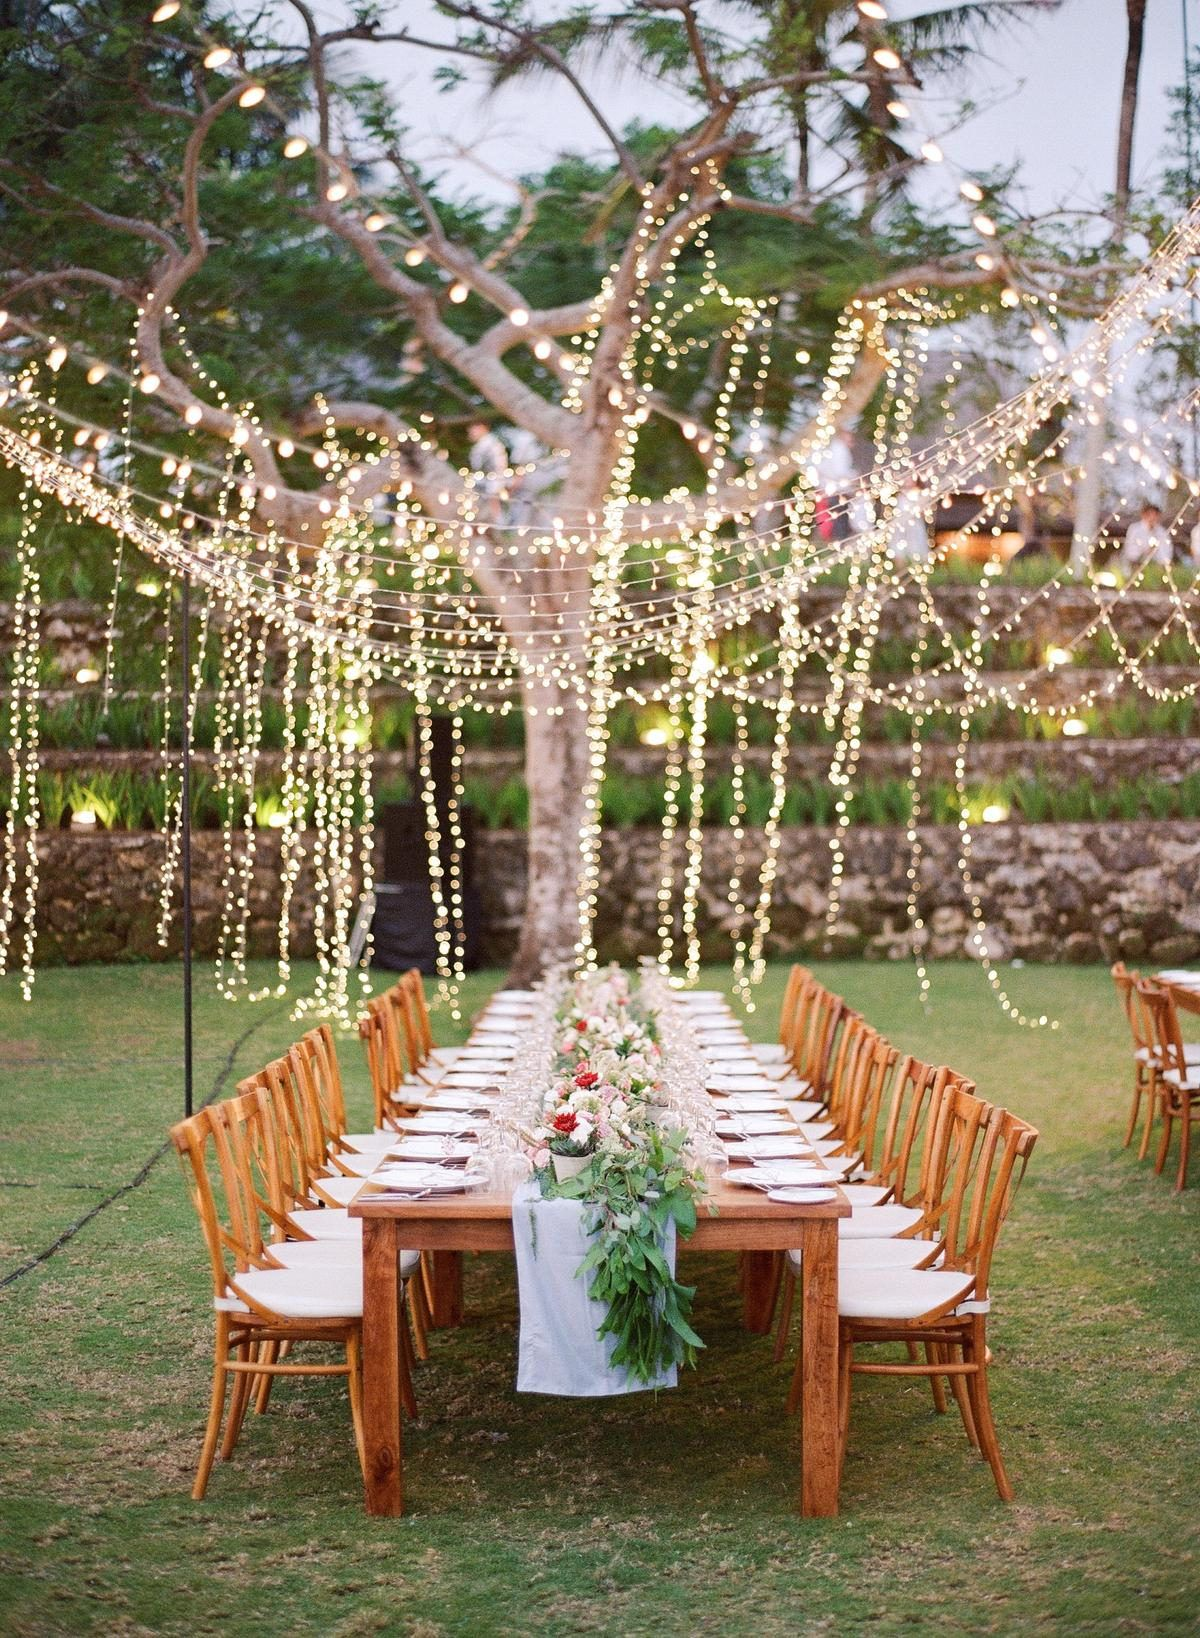 A Pinterest Board Brought To Life With Not One But Three Dresses Dream Day Wedding Outdoor Wedding Inspiration Outdoor Wedding